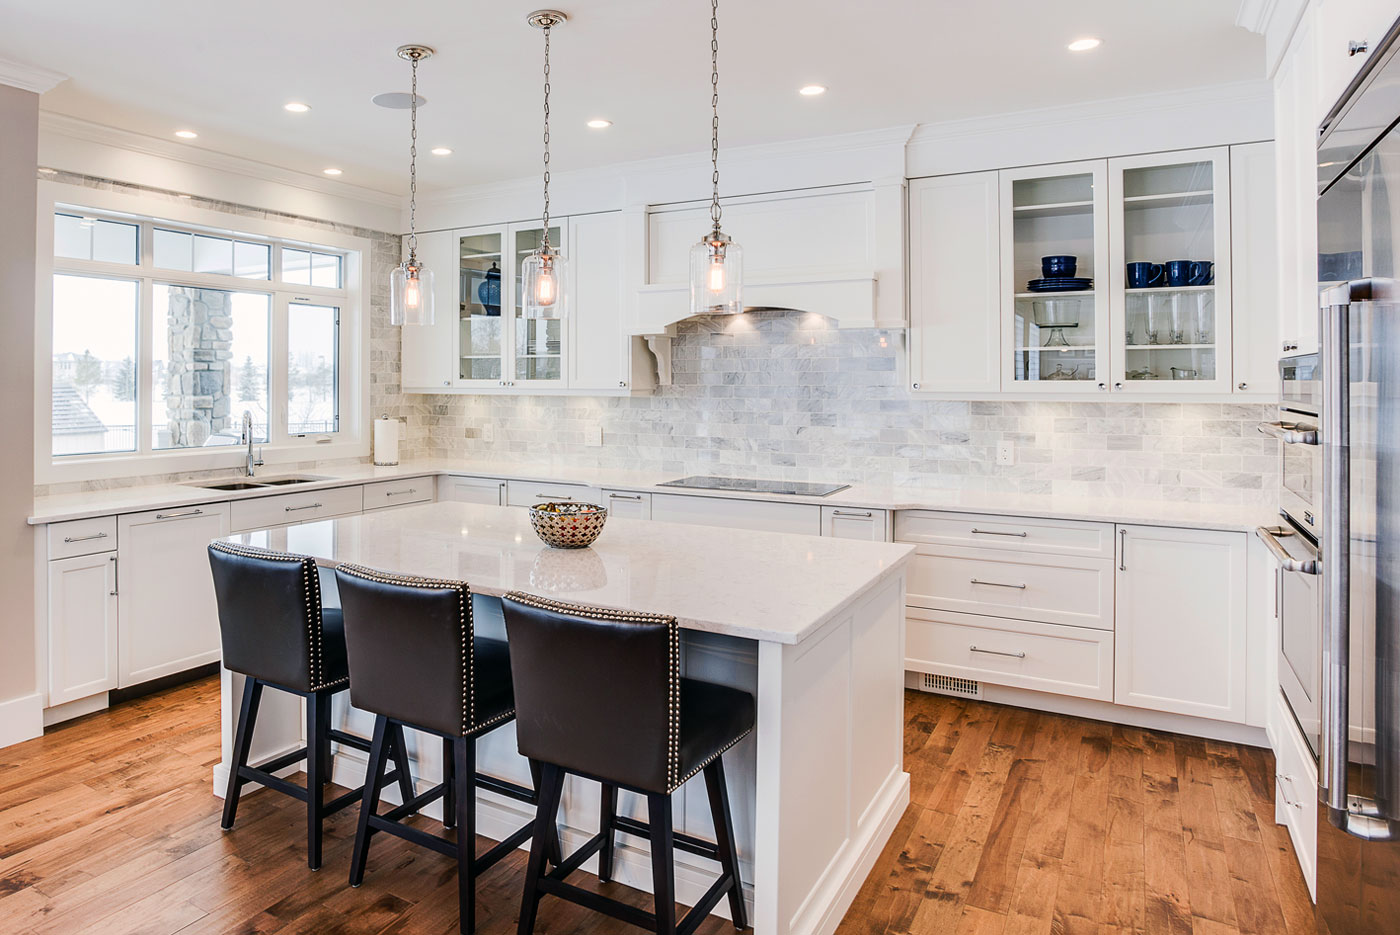 Enormous open concept traditional kitchen with white painted maple cabinets, quartz countertops and a Carrera marble tiled backsplash, available at Superior Cabinets.